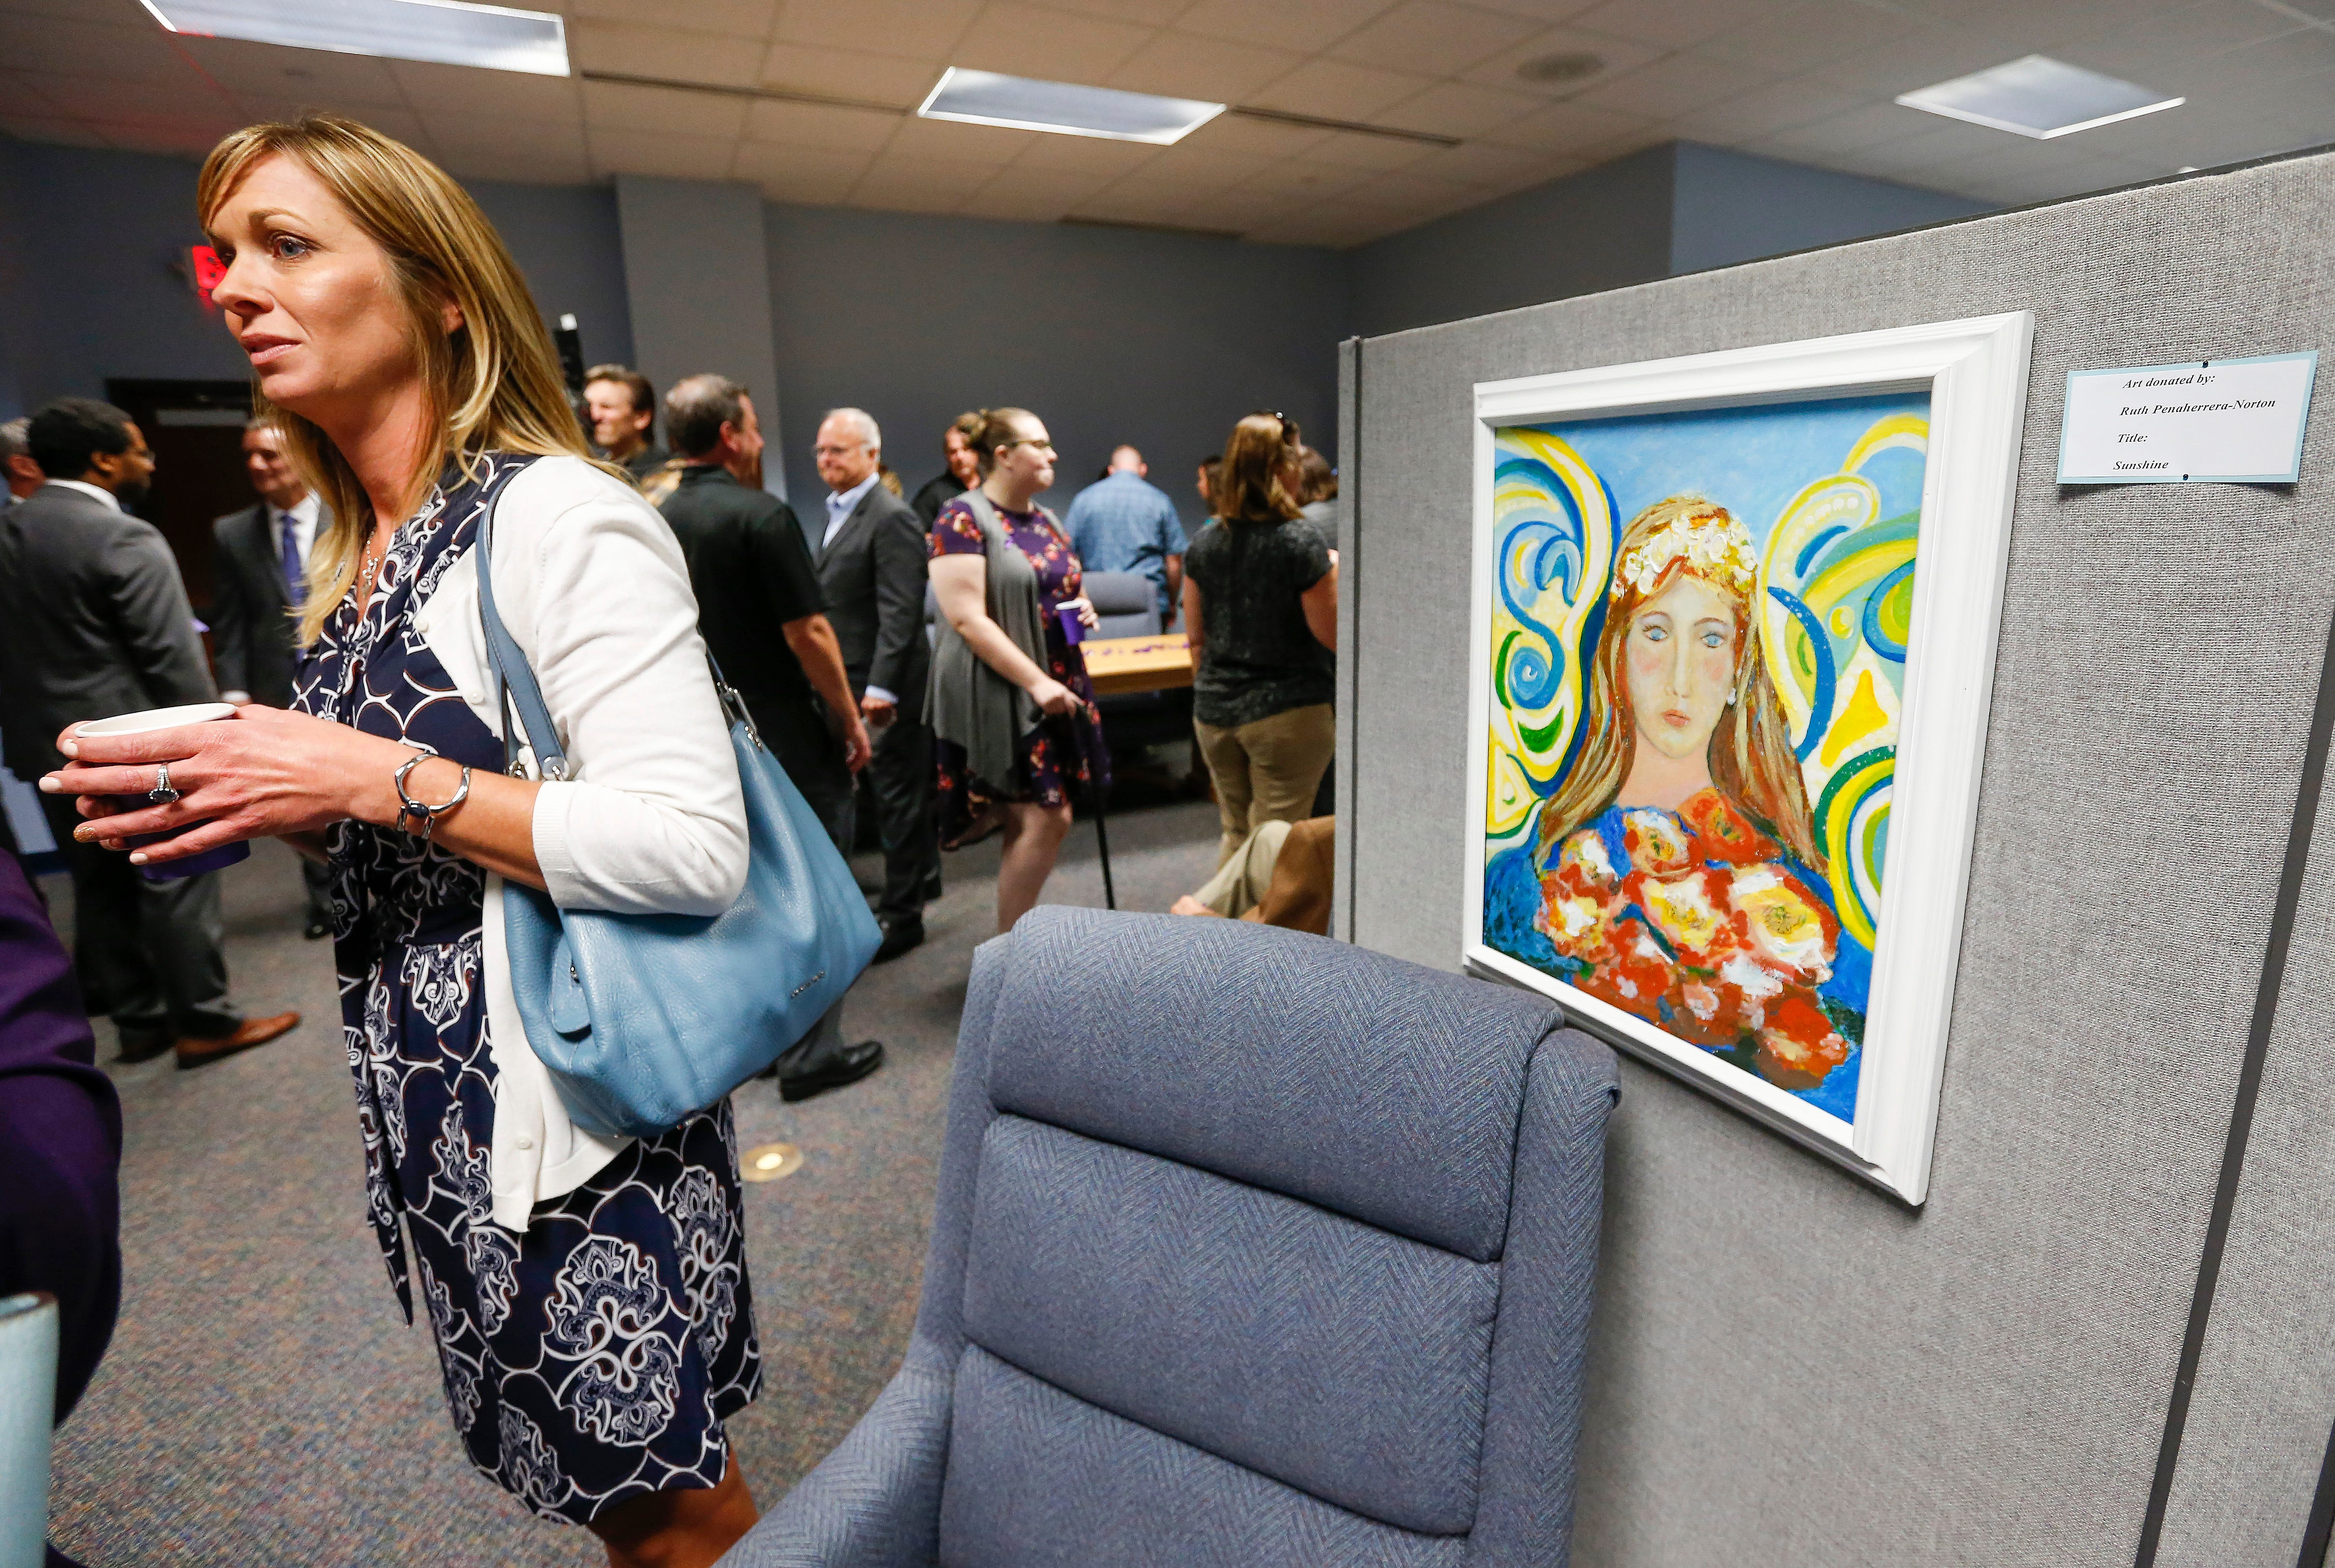 People tour the Family Justice Center located inside the Greene County Justice Center during its grand opening on Monday, Oct. 1, 2018.